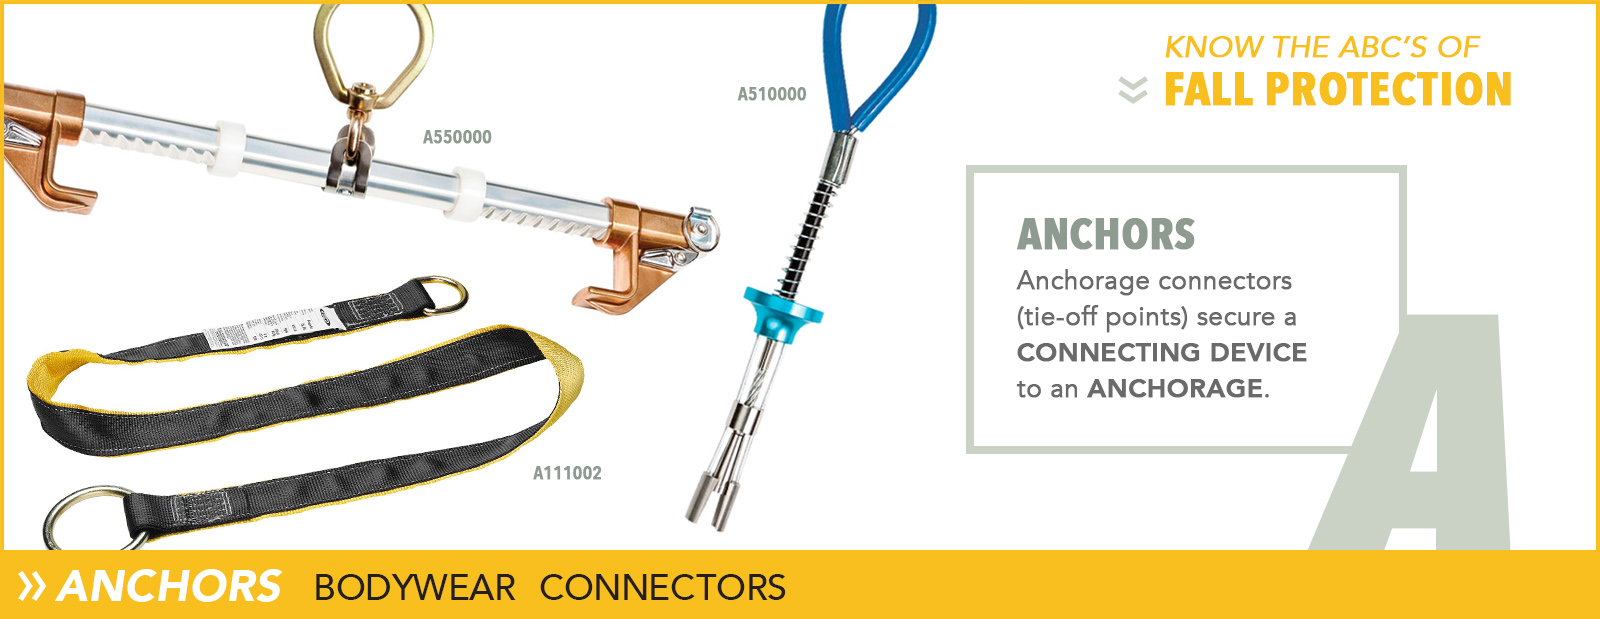 Fall Protection Anchors